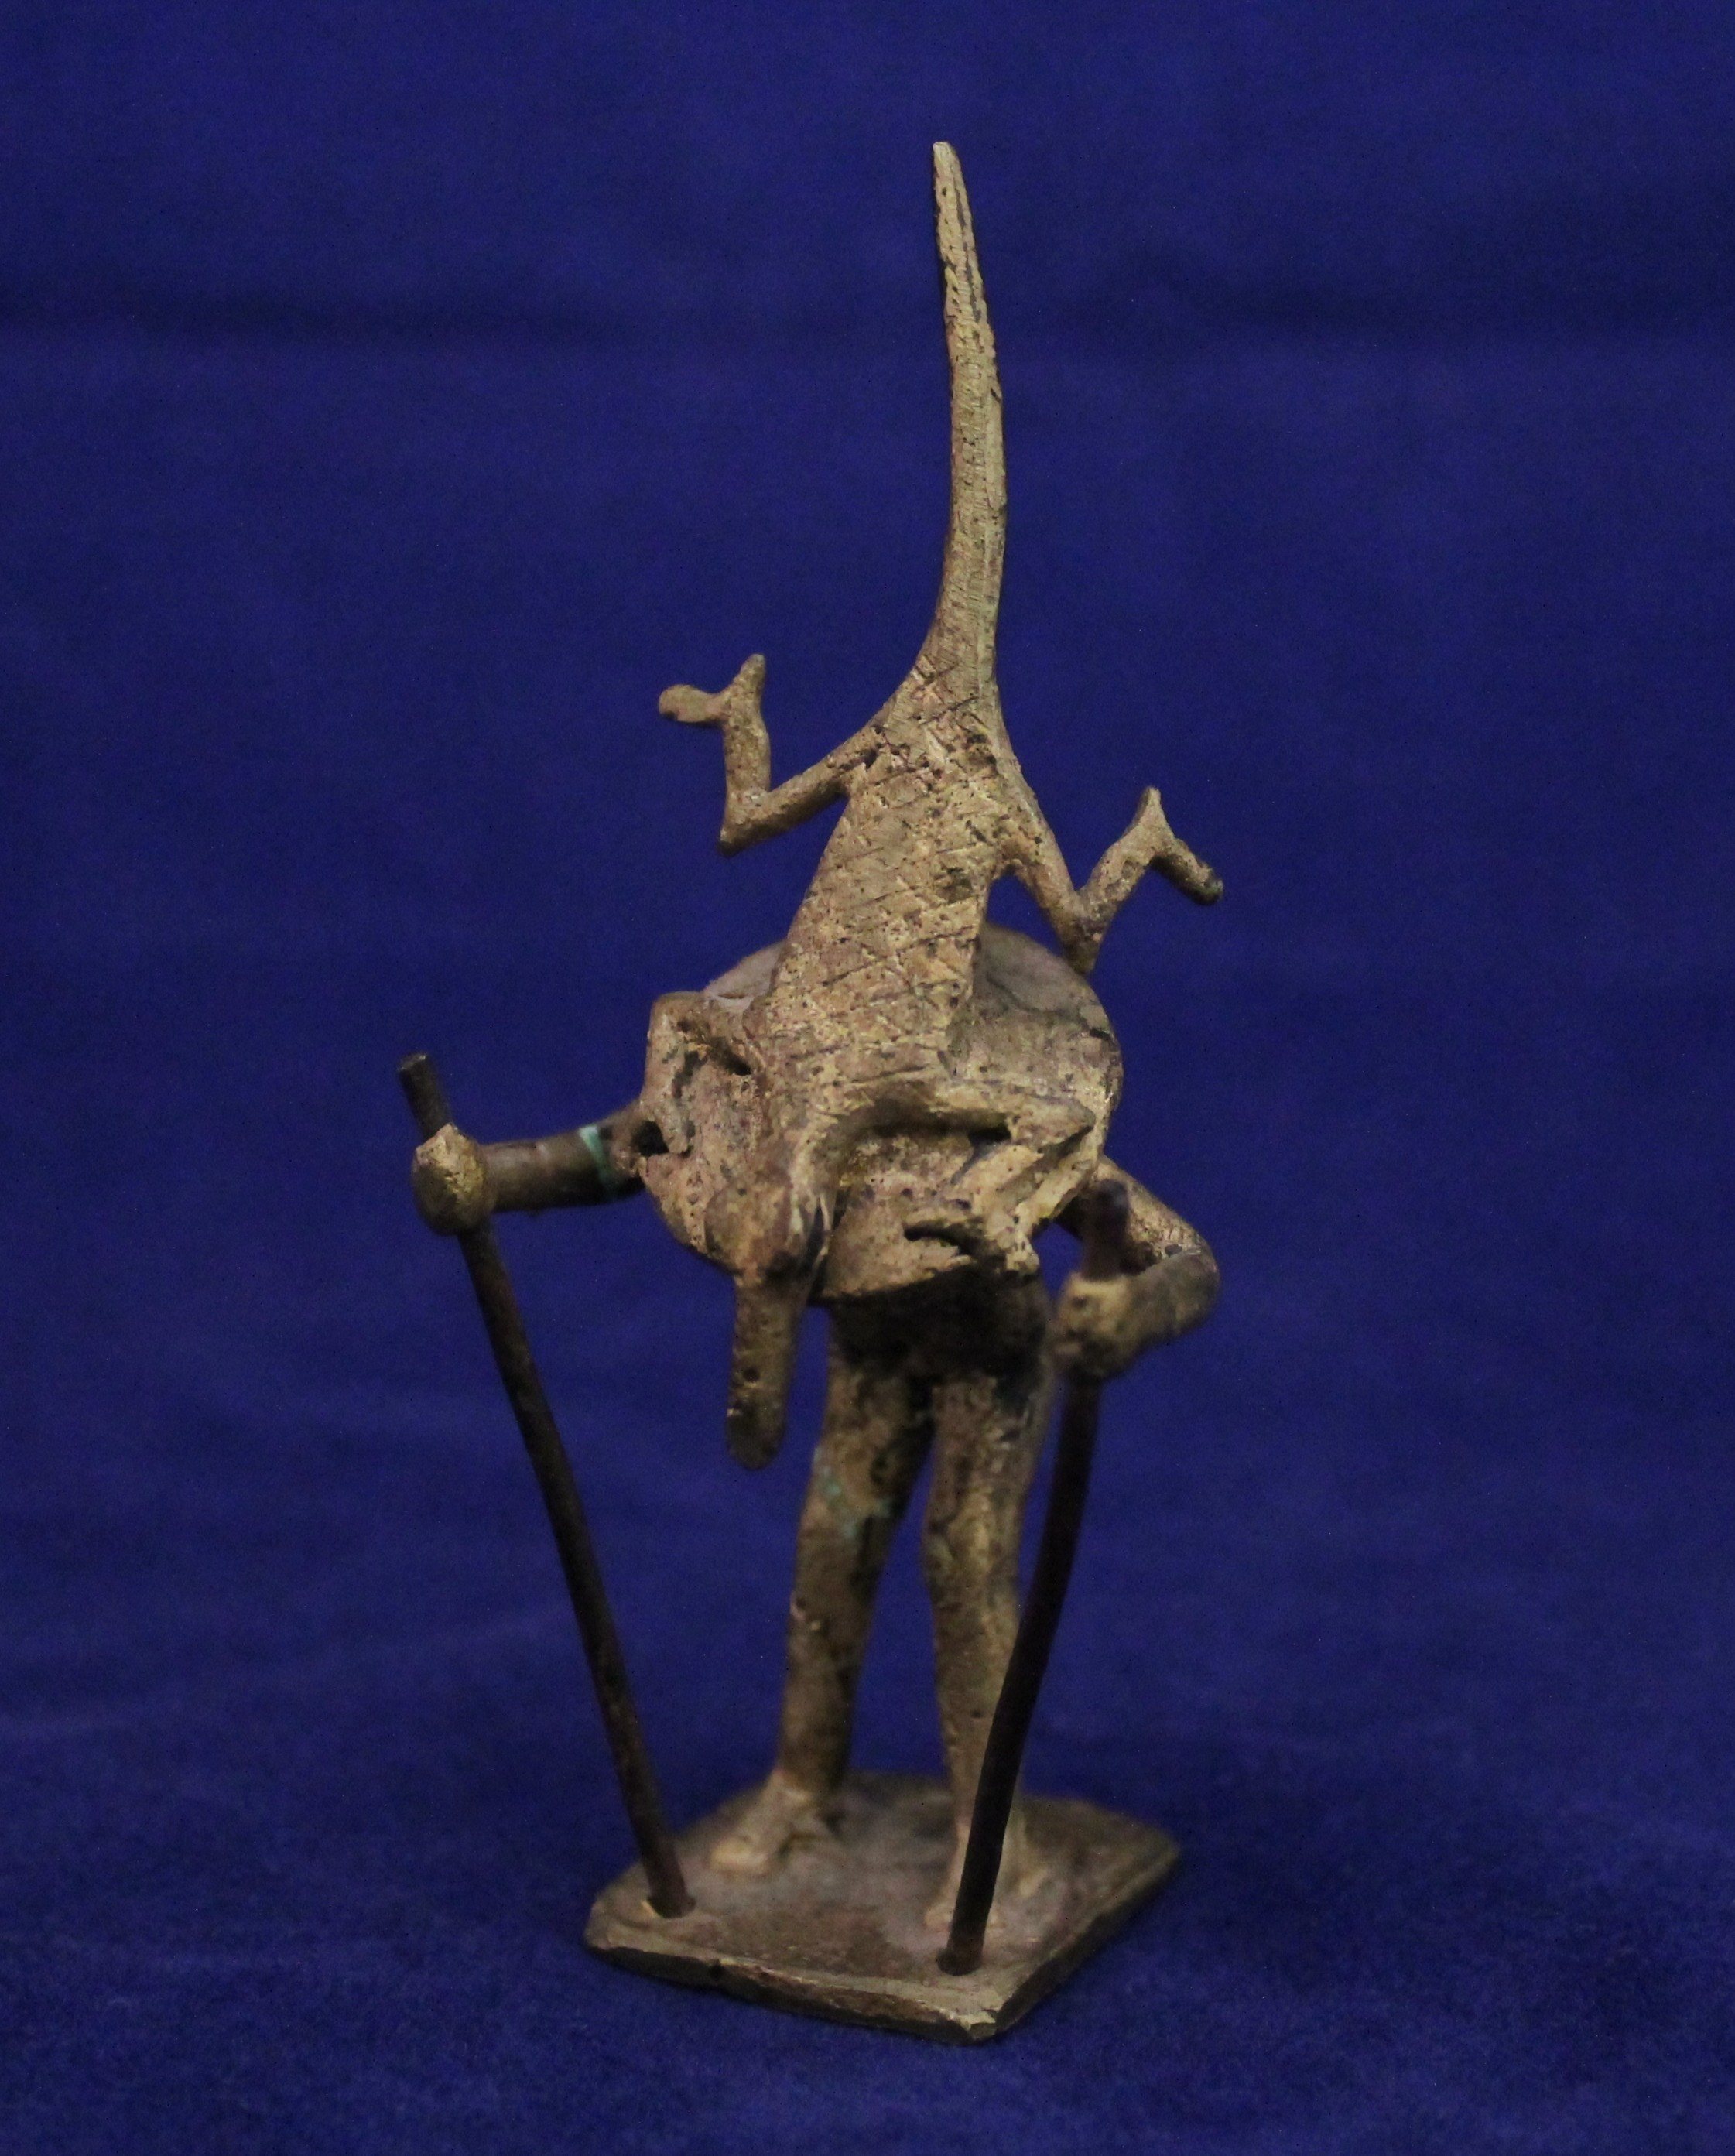 Senufo Brass Sculptures, Researched by Kayla Sanders